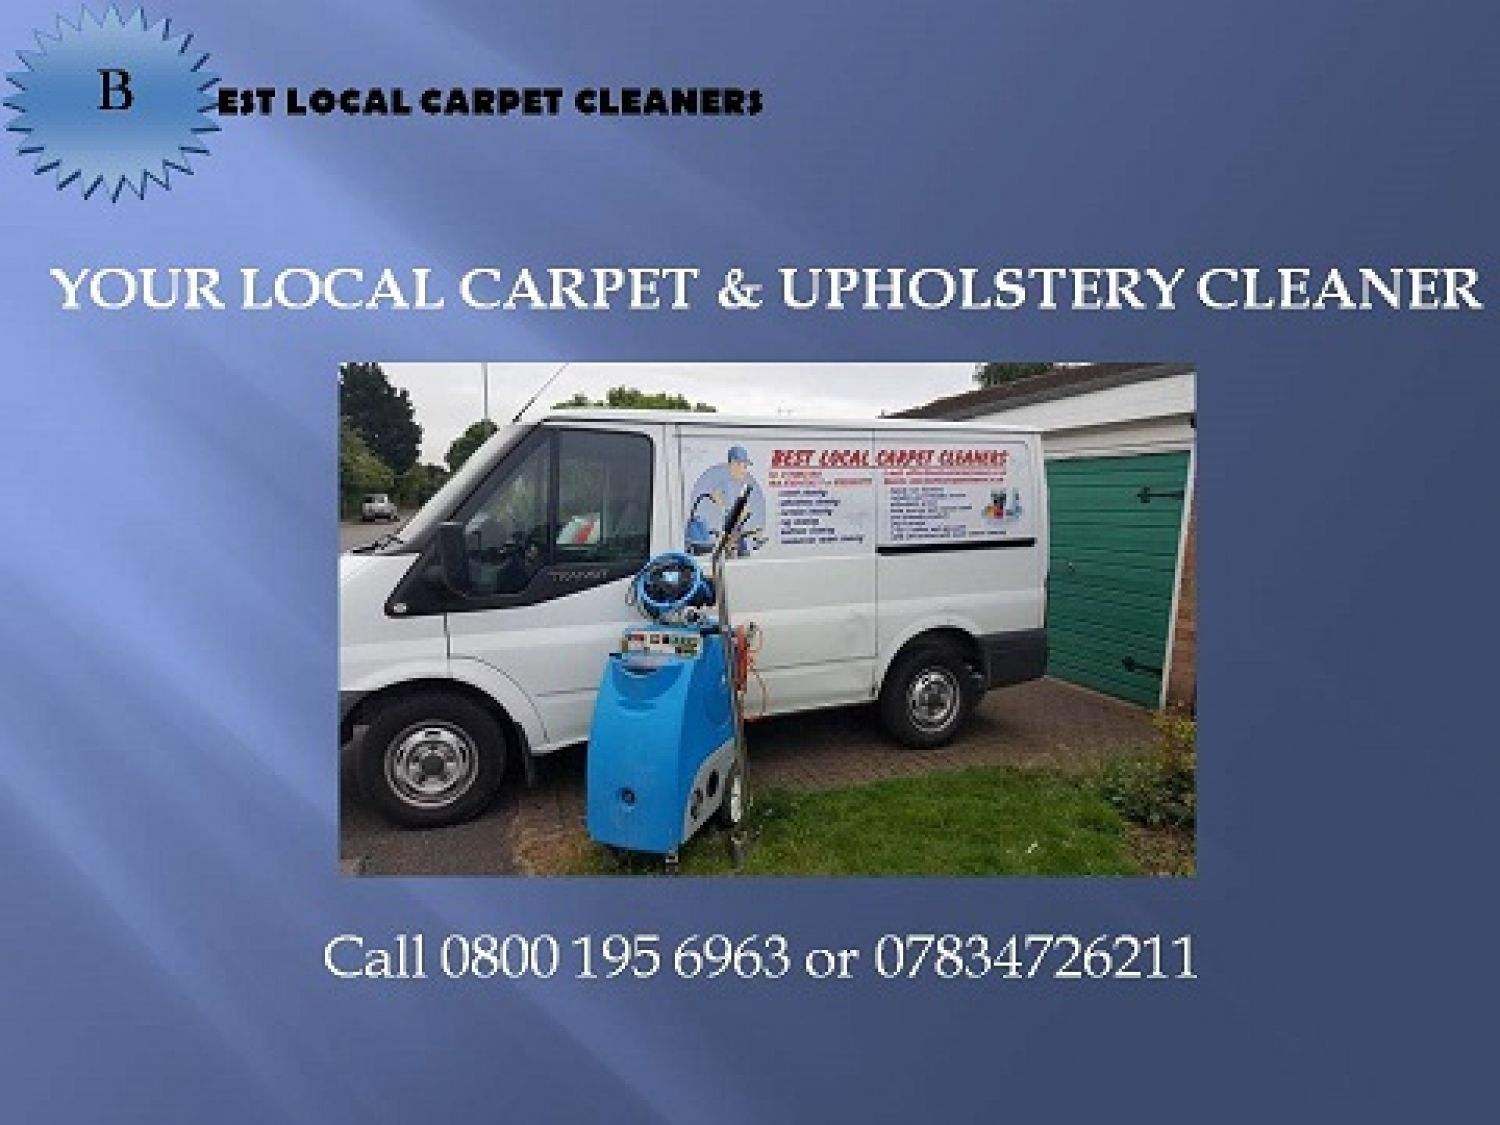 They are a small family carpet & upholstery cleaning company